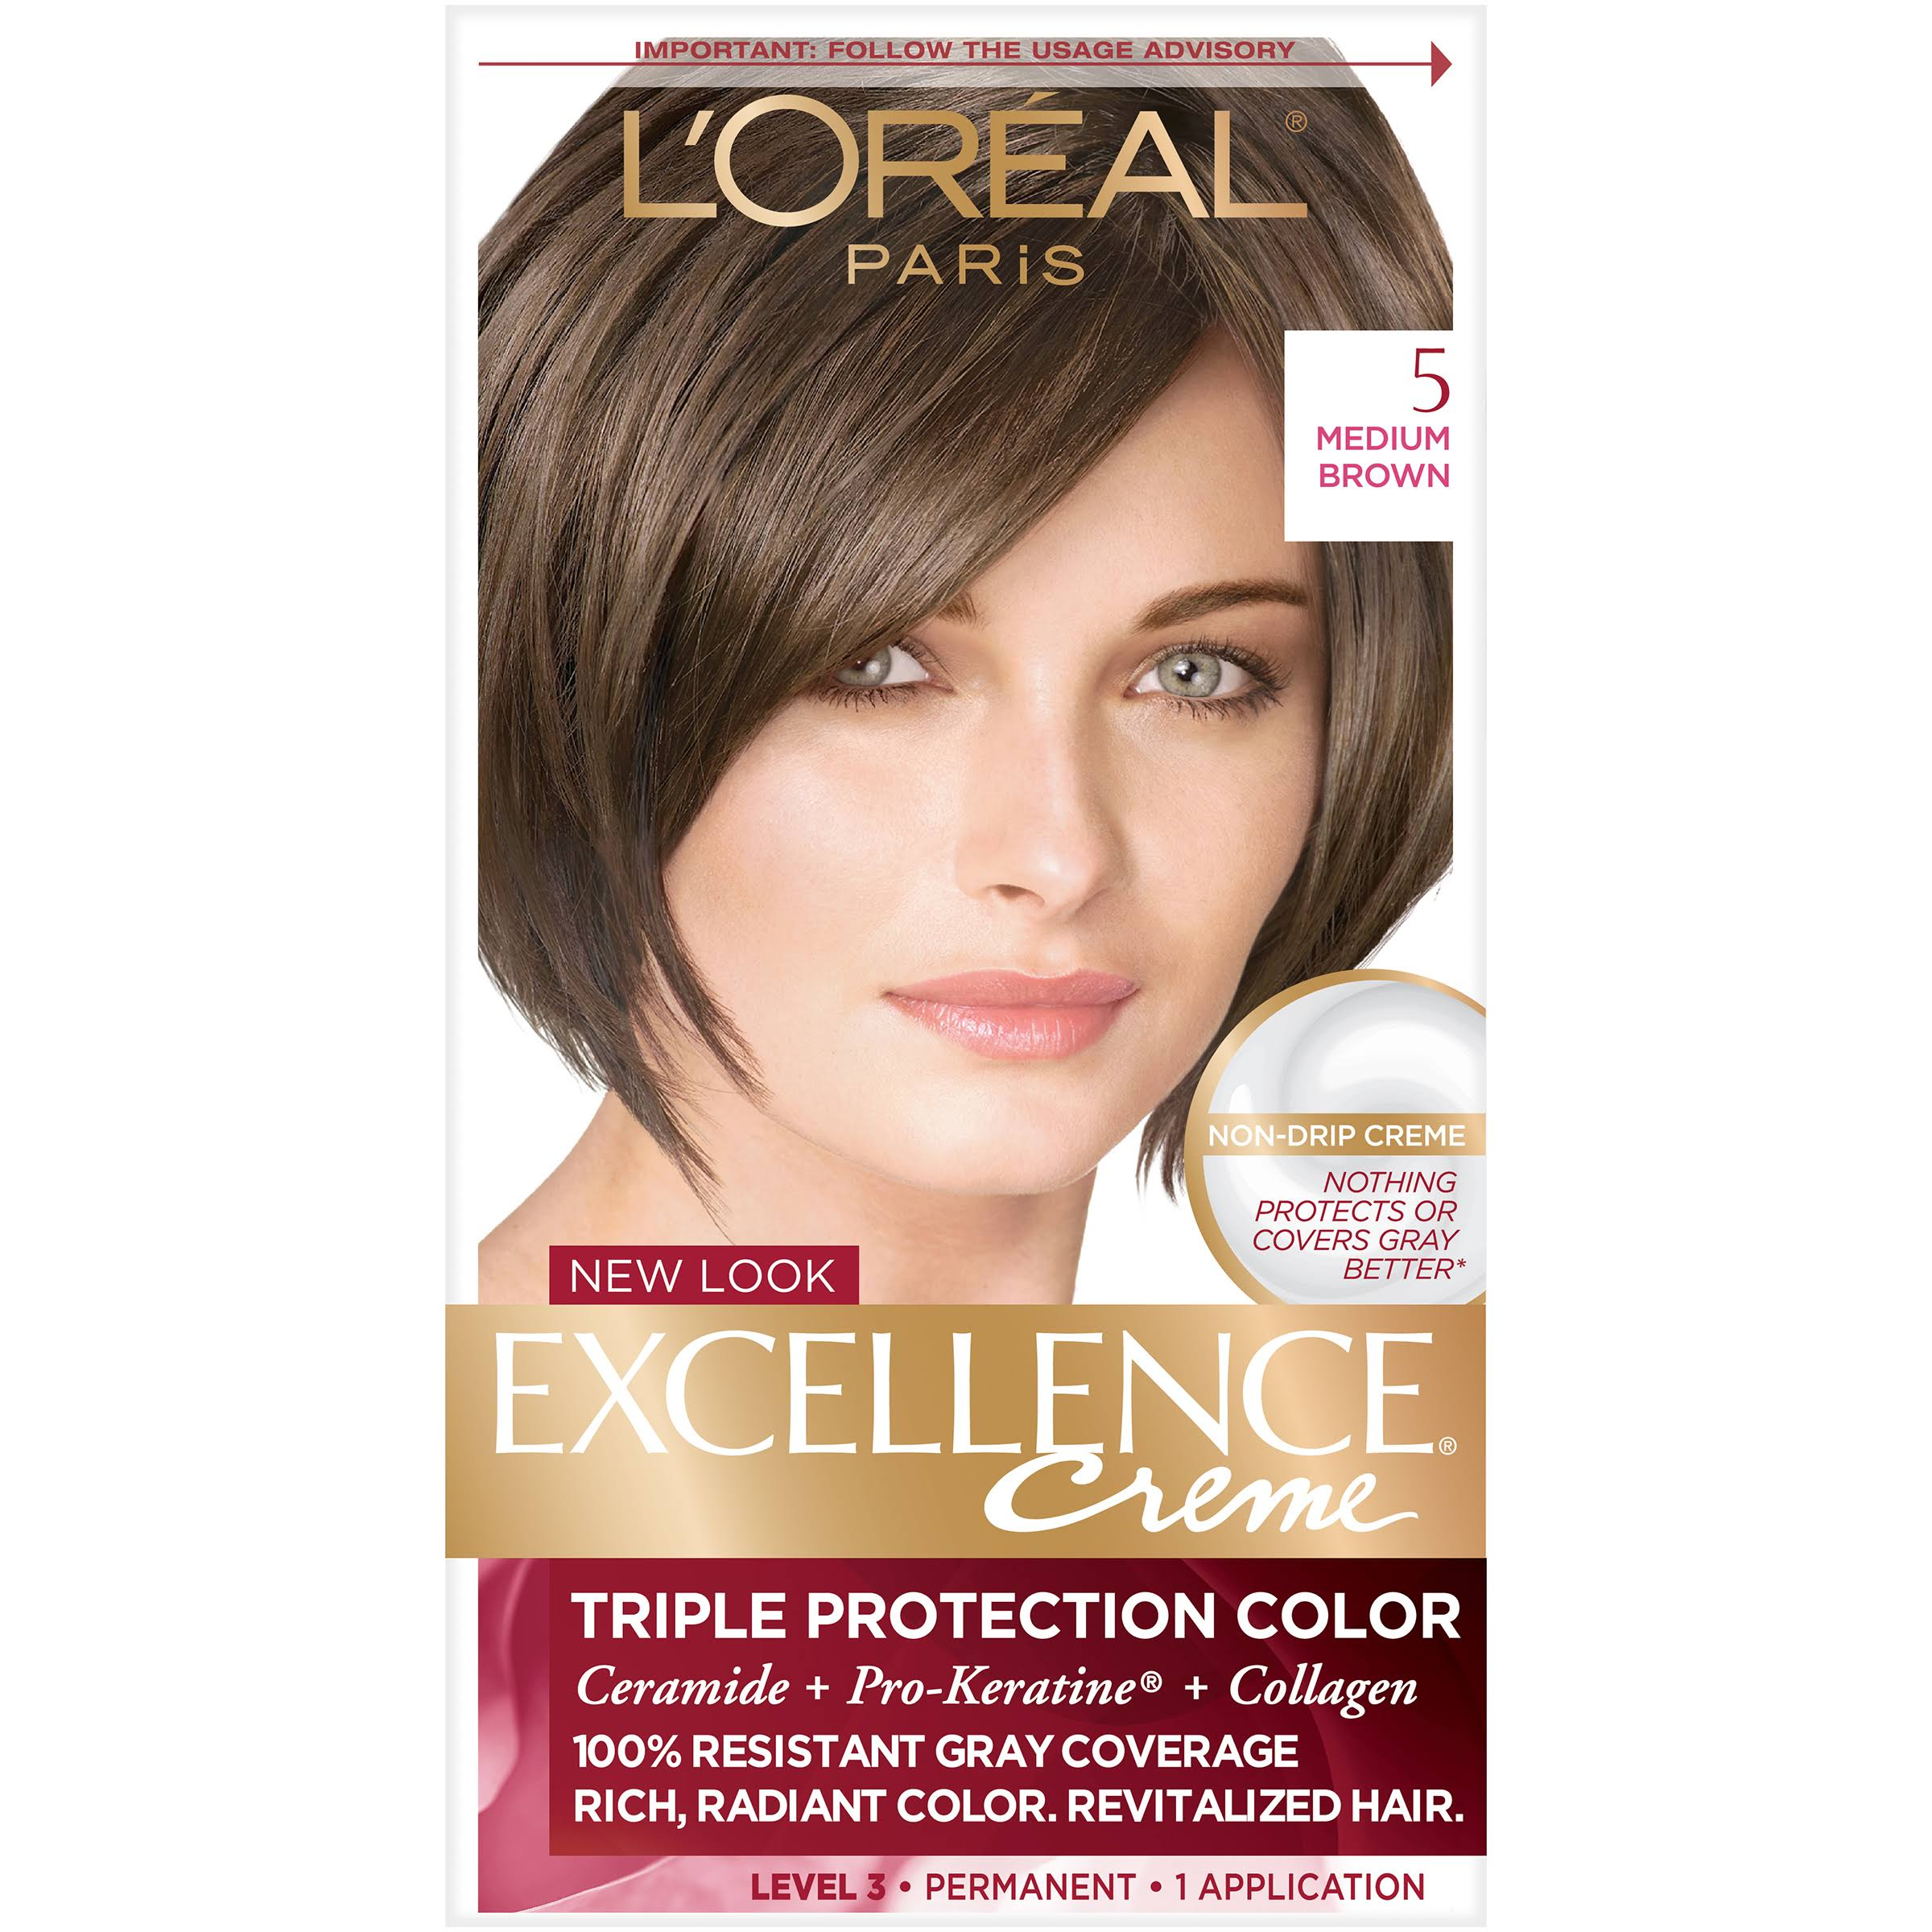 L'Oréal Paris Excellence Cream Permanent Hair Color - 5 Medium Brown